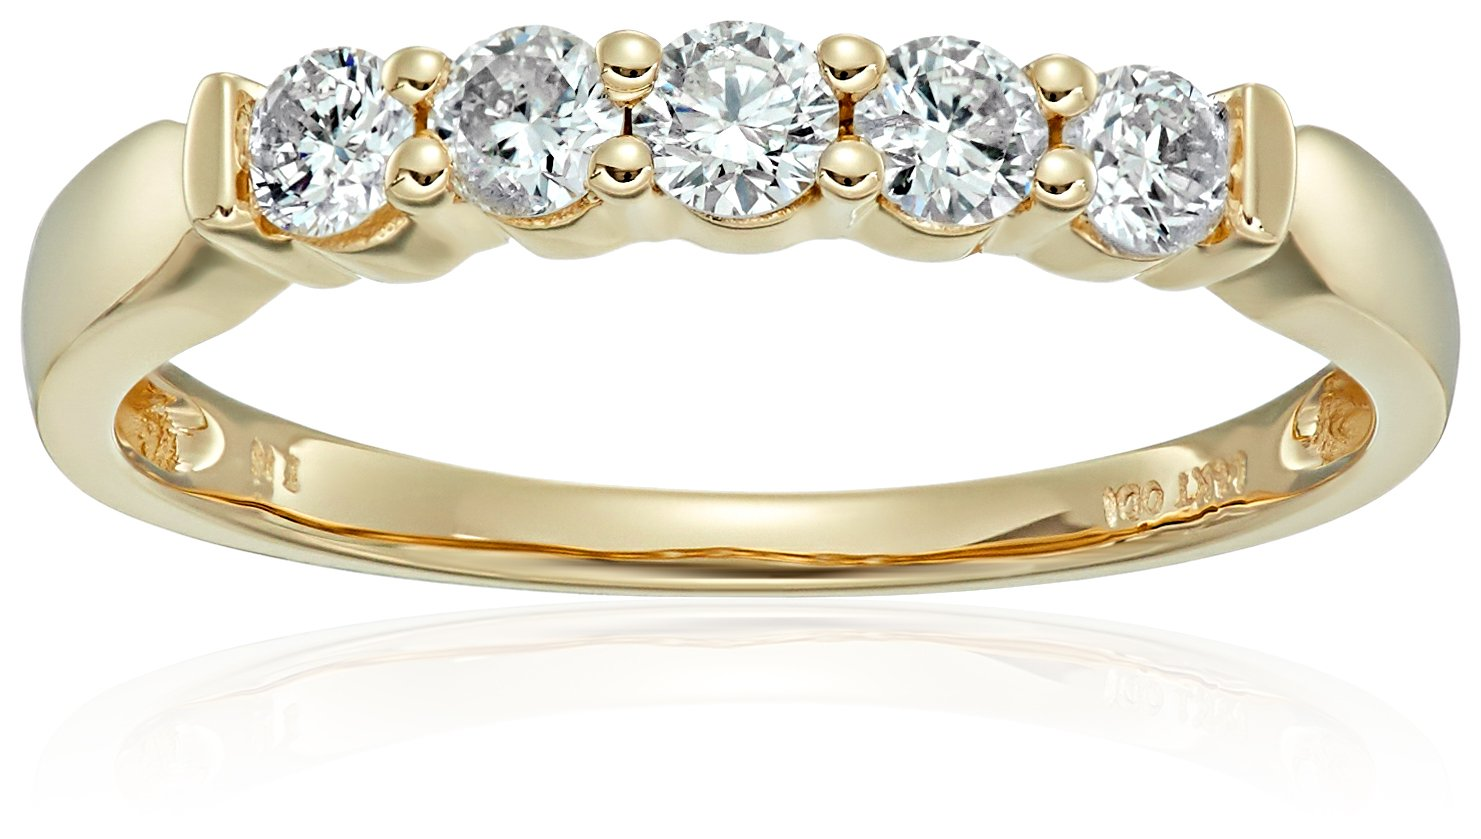 14k Yellow Gold 5-Stone Diamond Anniversary Band (1/2 cttw, H-I Color, I2-I3 Clarity), Size 8 by Amazon Collection